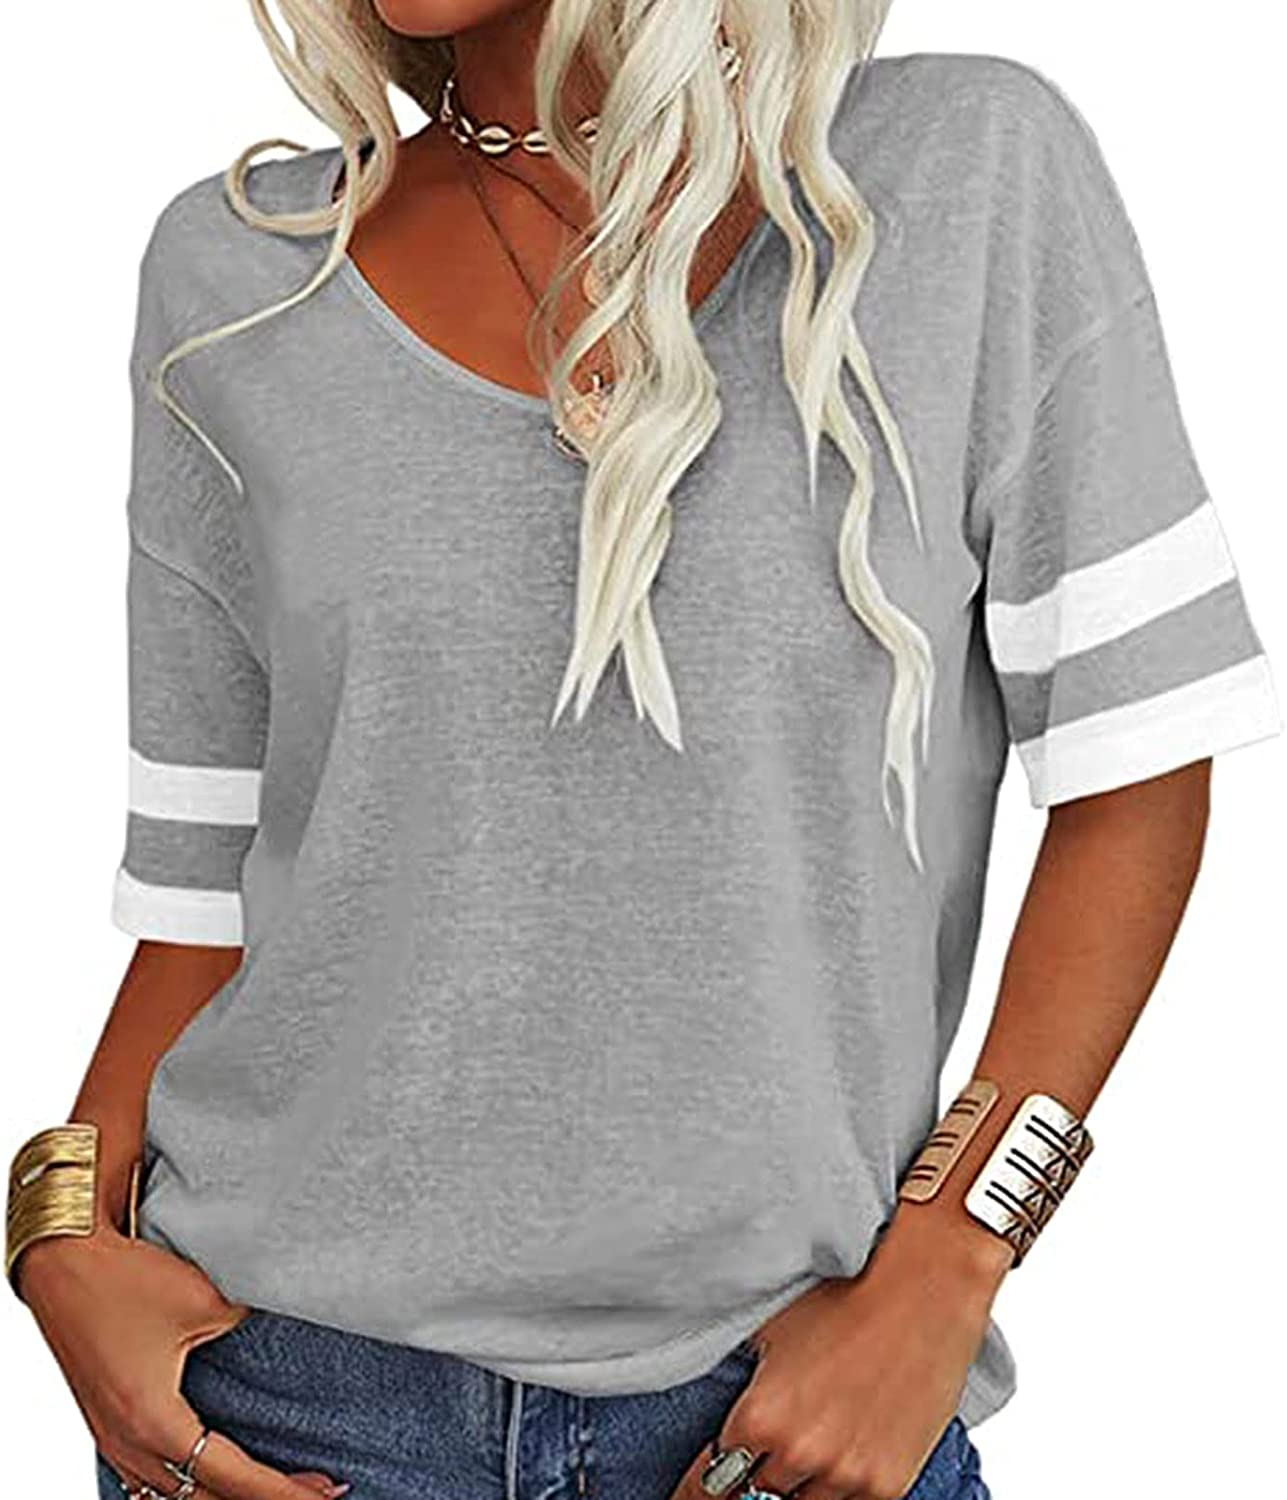 Fashion Woman V-Neck Short Sleeve T-Shirt Summer Patchwork Loose Blouse Tops Summer Tops Tee Shirts Blouse